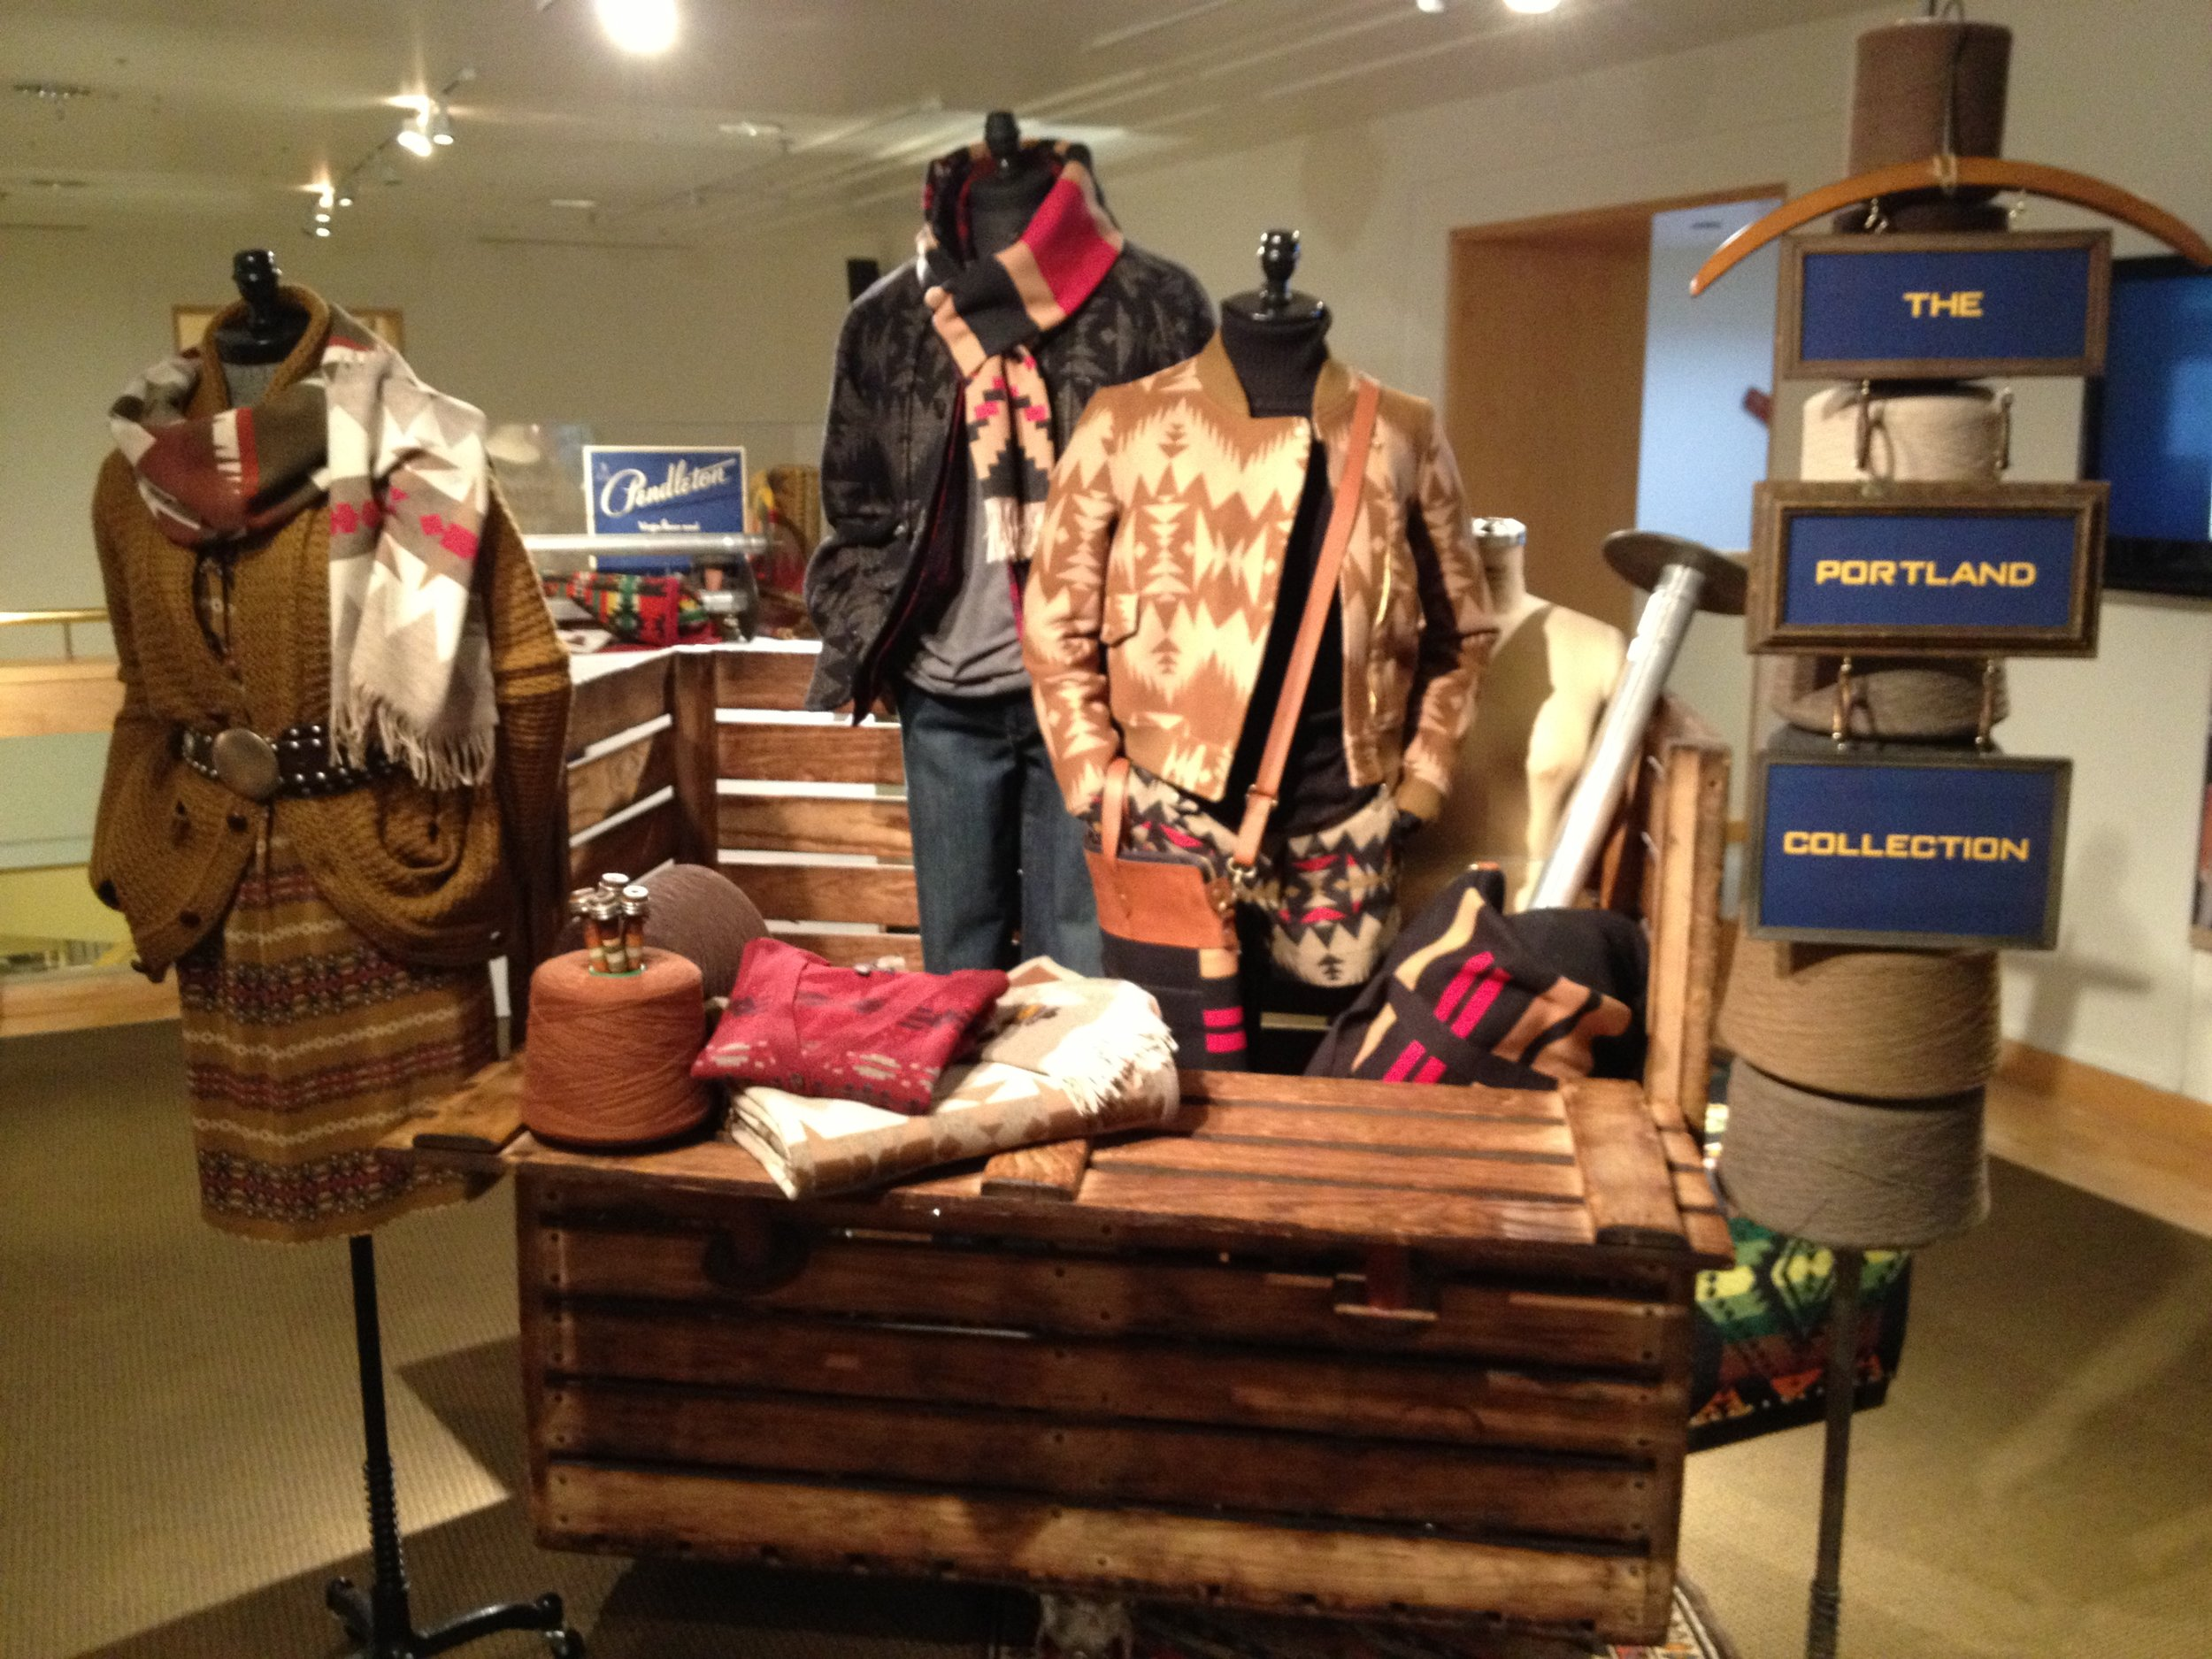 A BORROWED MILL CART WAS THE PERFECT STAGE FOR 'THE PORTLAND COLLECTION' VIGNETTE